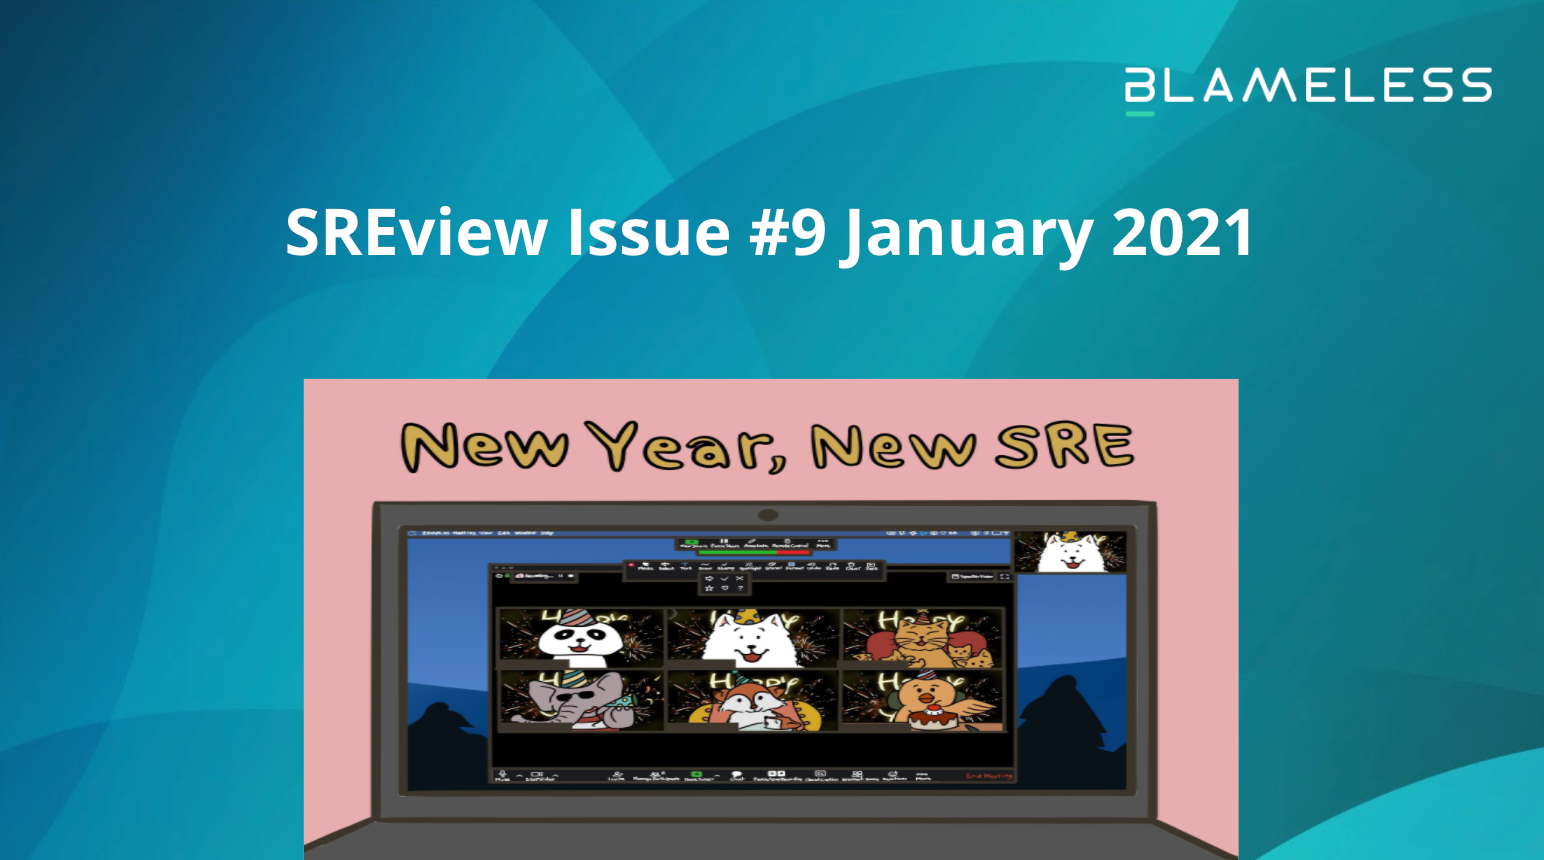 SREview Issue #9 January 2021